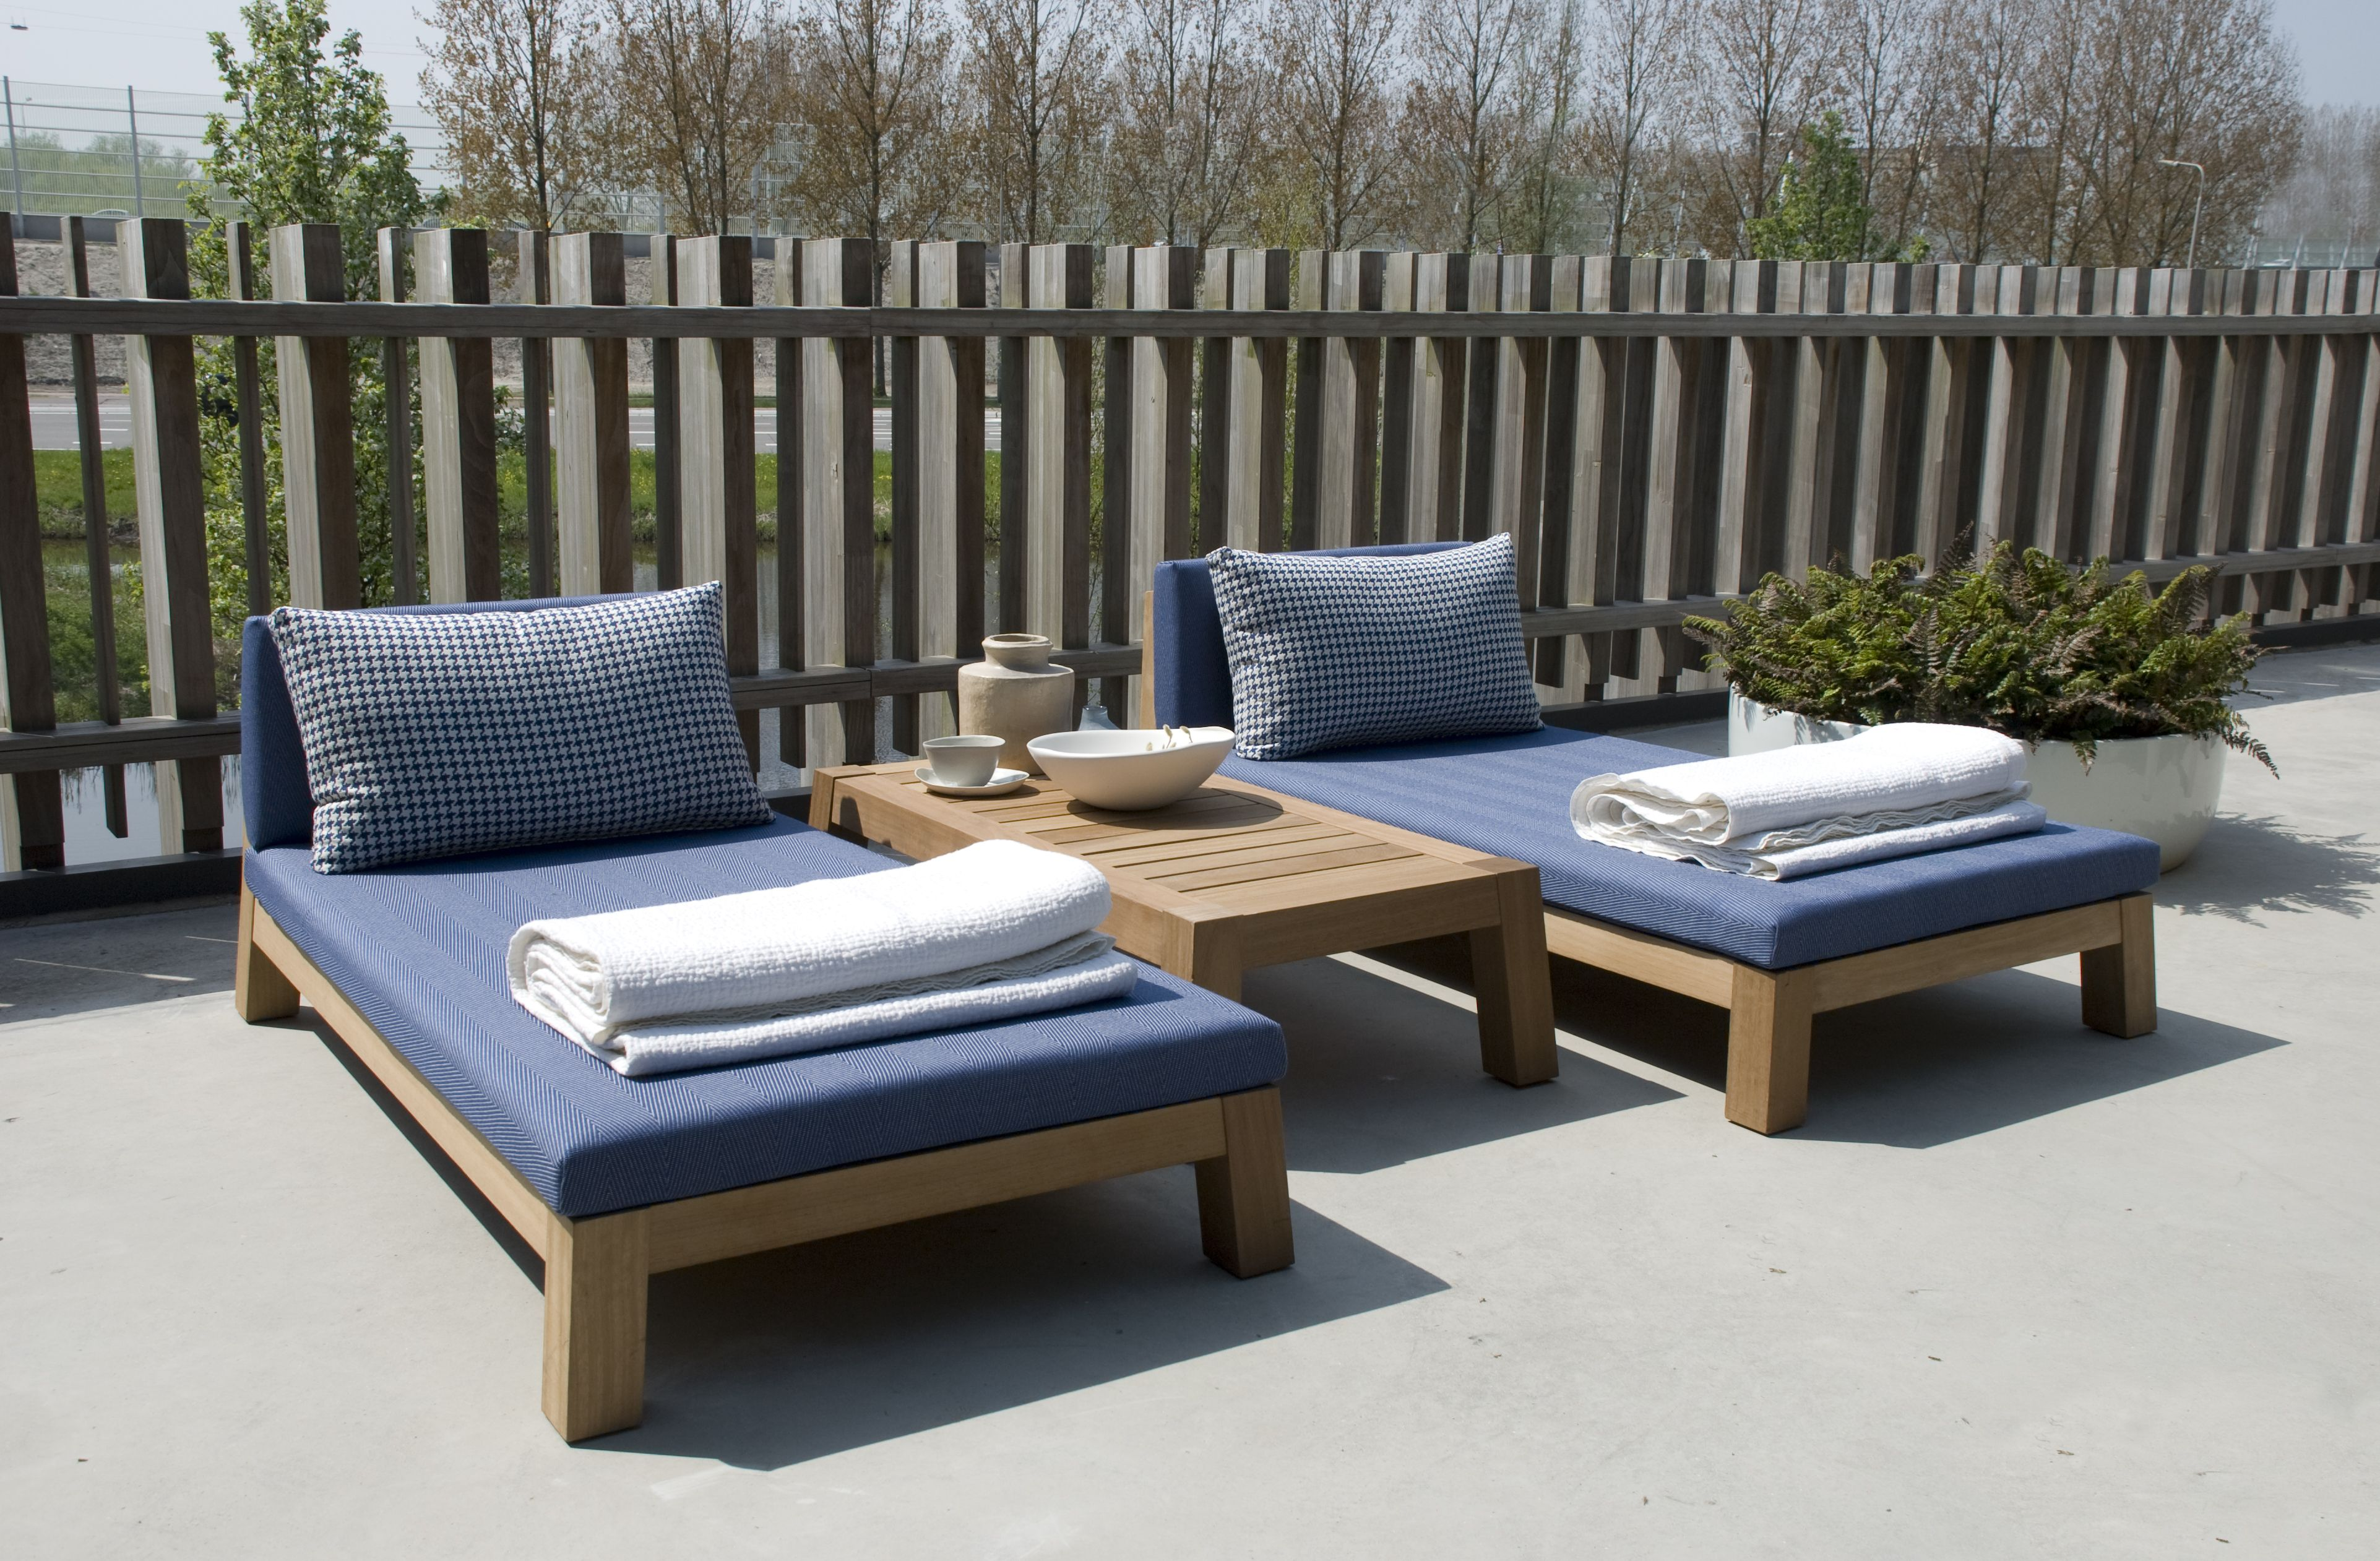 New And Only Available In The Piet Boon Store (Amsterdam Area): Exclusive  Outdoor Fabrics Specially Selected By Karin Meyn For Piet Boon Outdoor  Collection